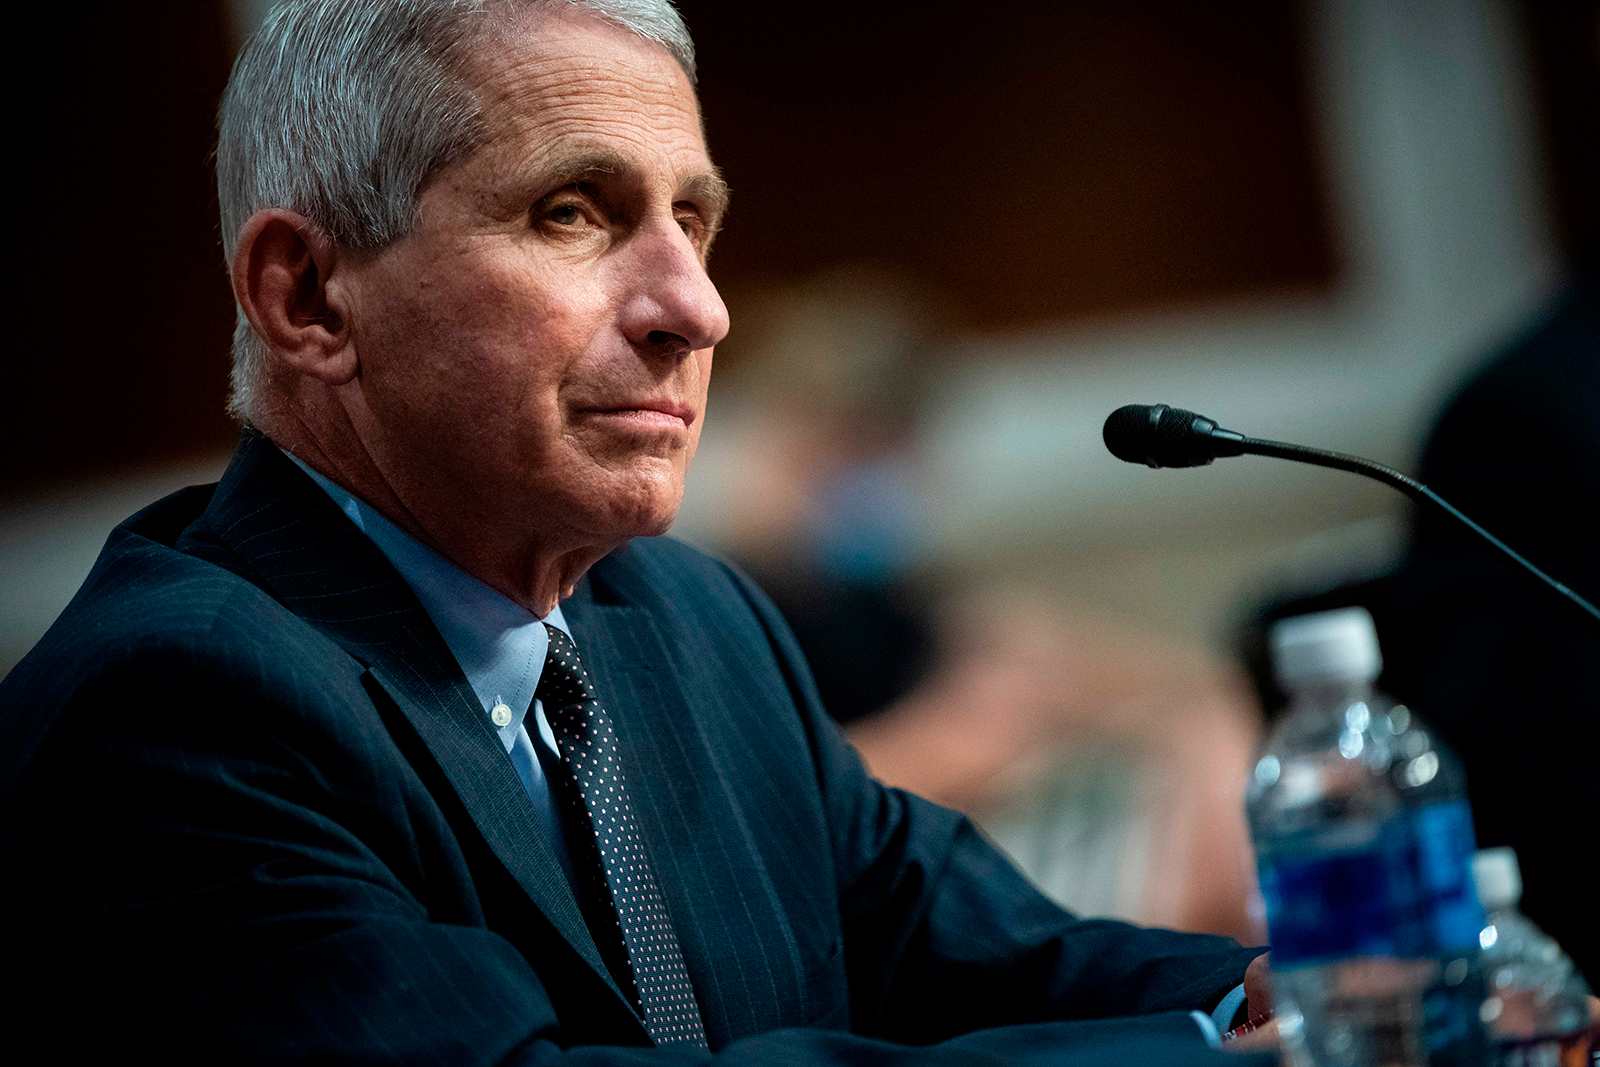 Anthony Fauci, director of the National Institute of Allergy and Infectious Diseases, listens during a Senate Health, Education, Labor and Pensions Committee hearing in Washington, DC, on June 30.